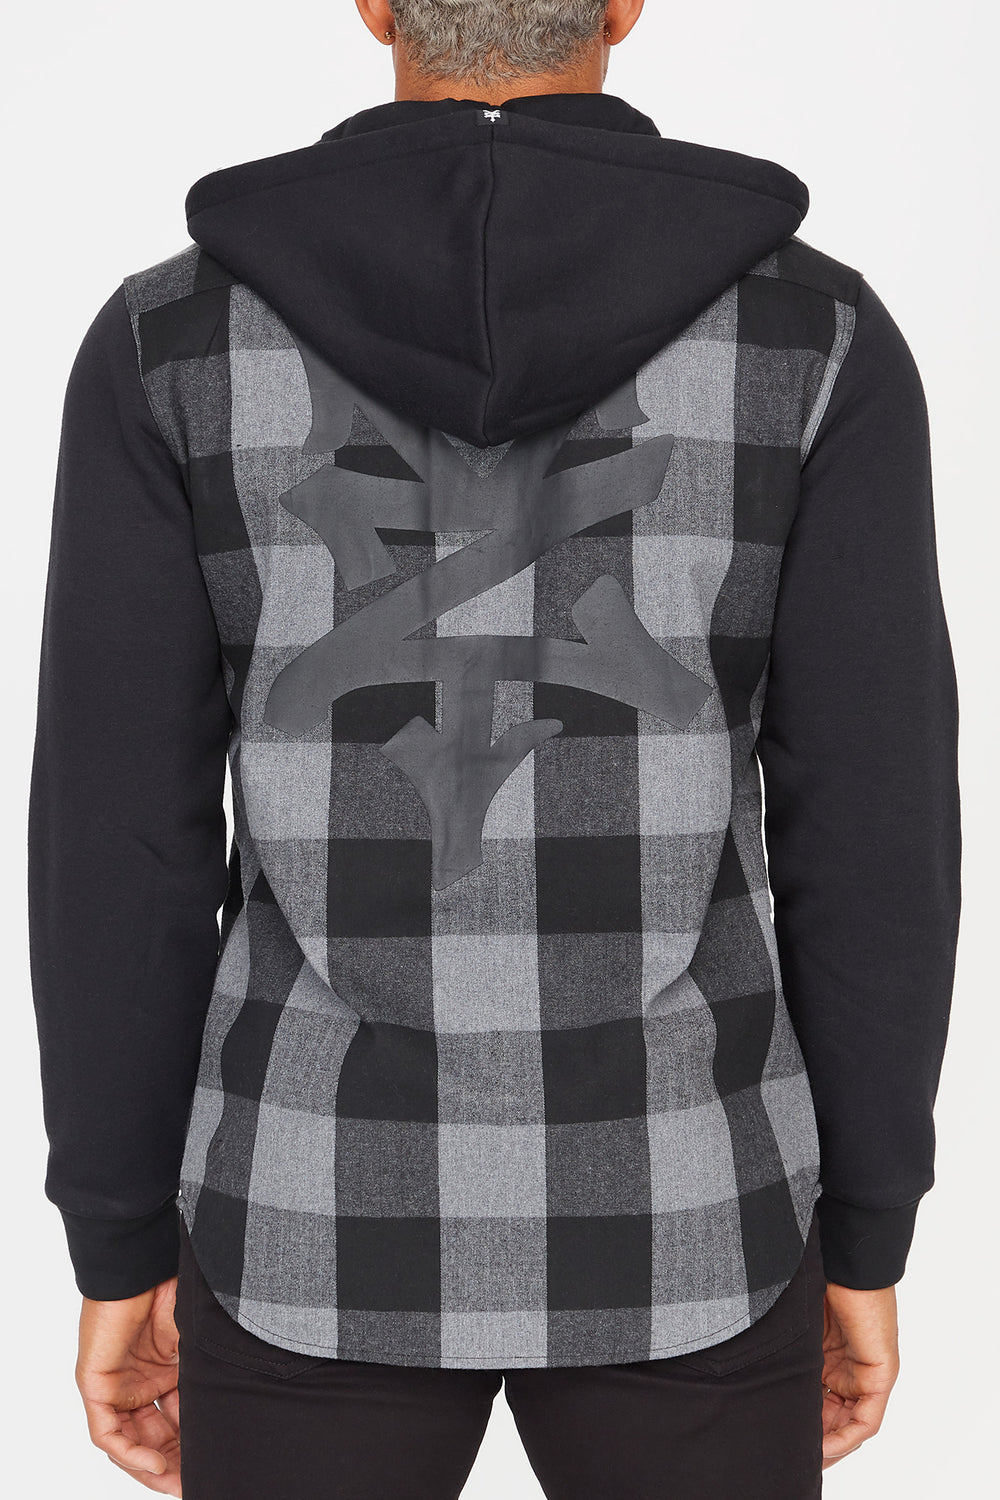 Zoo York Mens Hooded Flannel Button-Up Shirt Charcoal